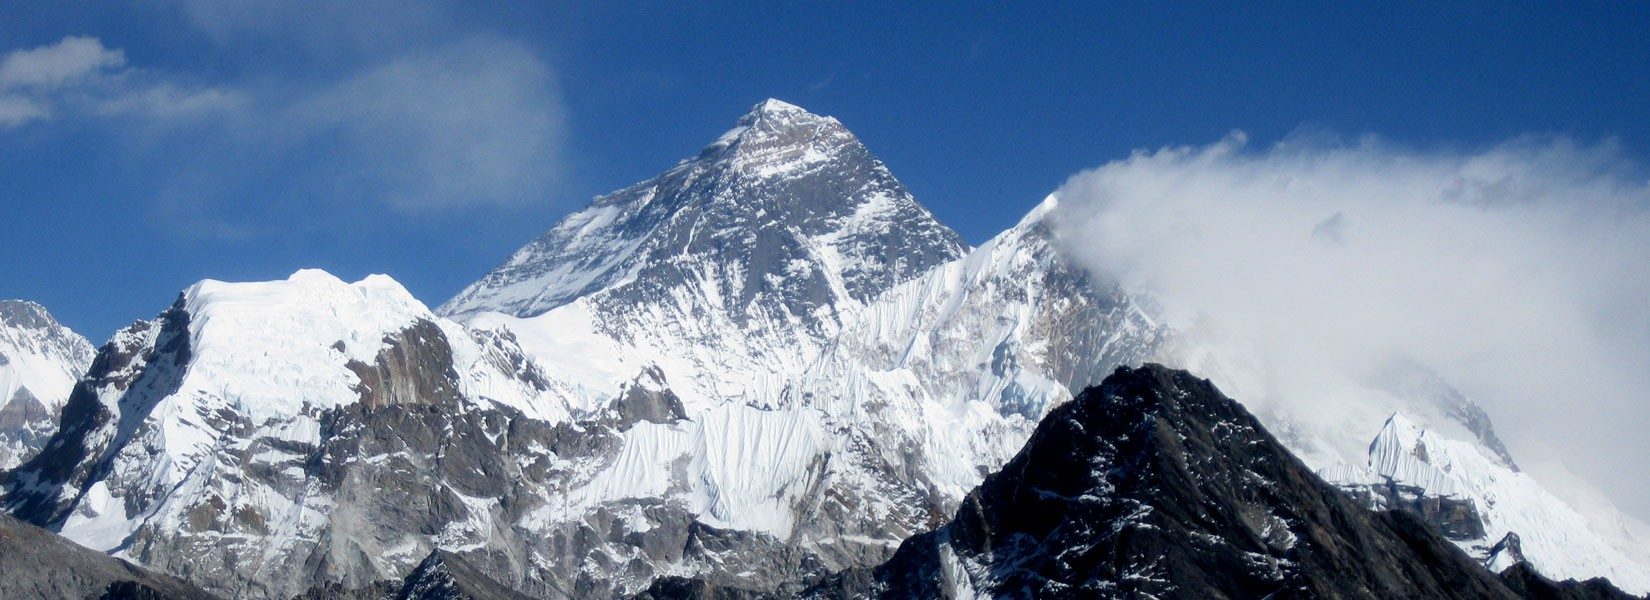 everest-region-trekking